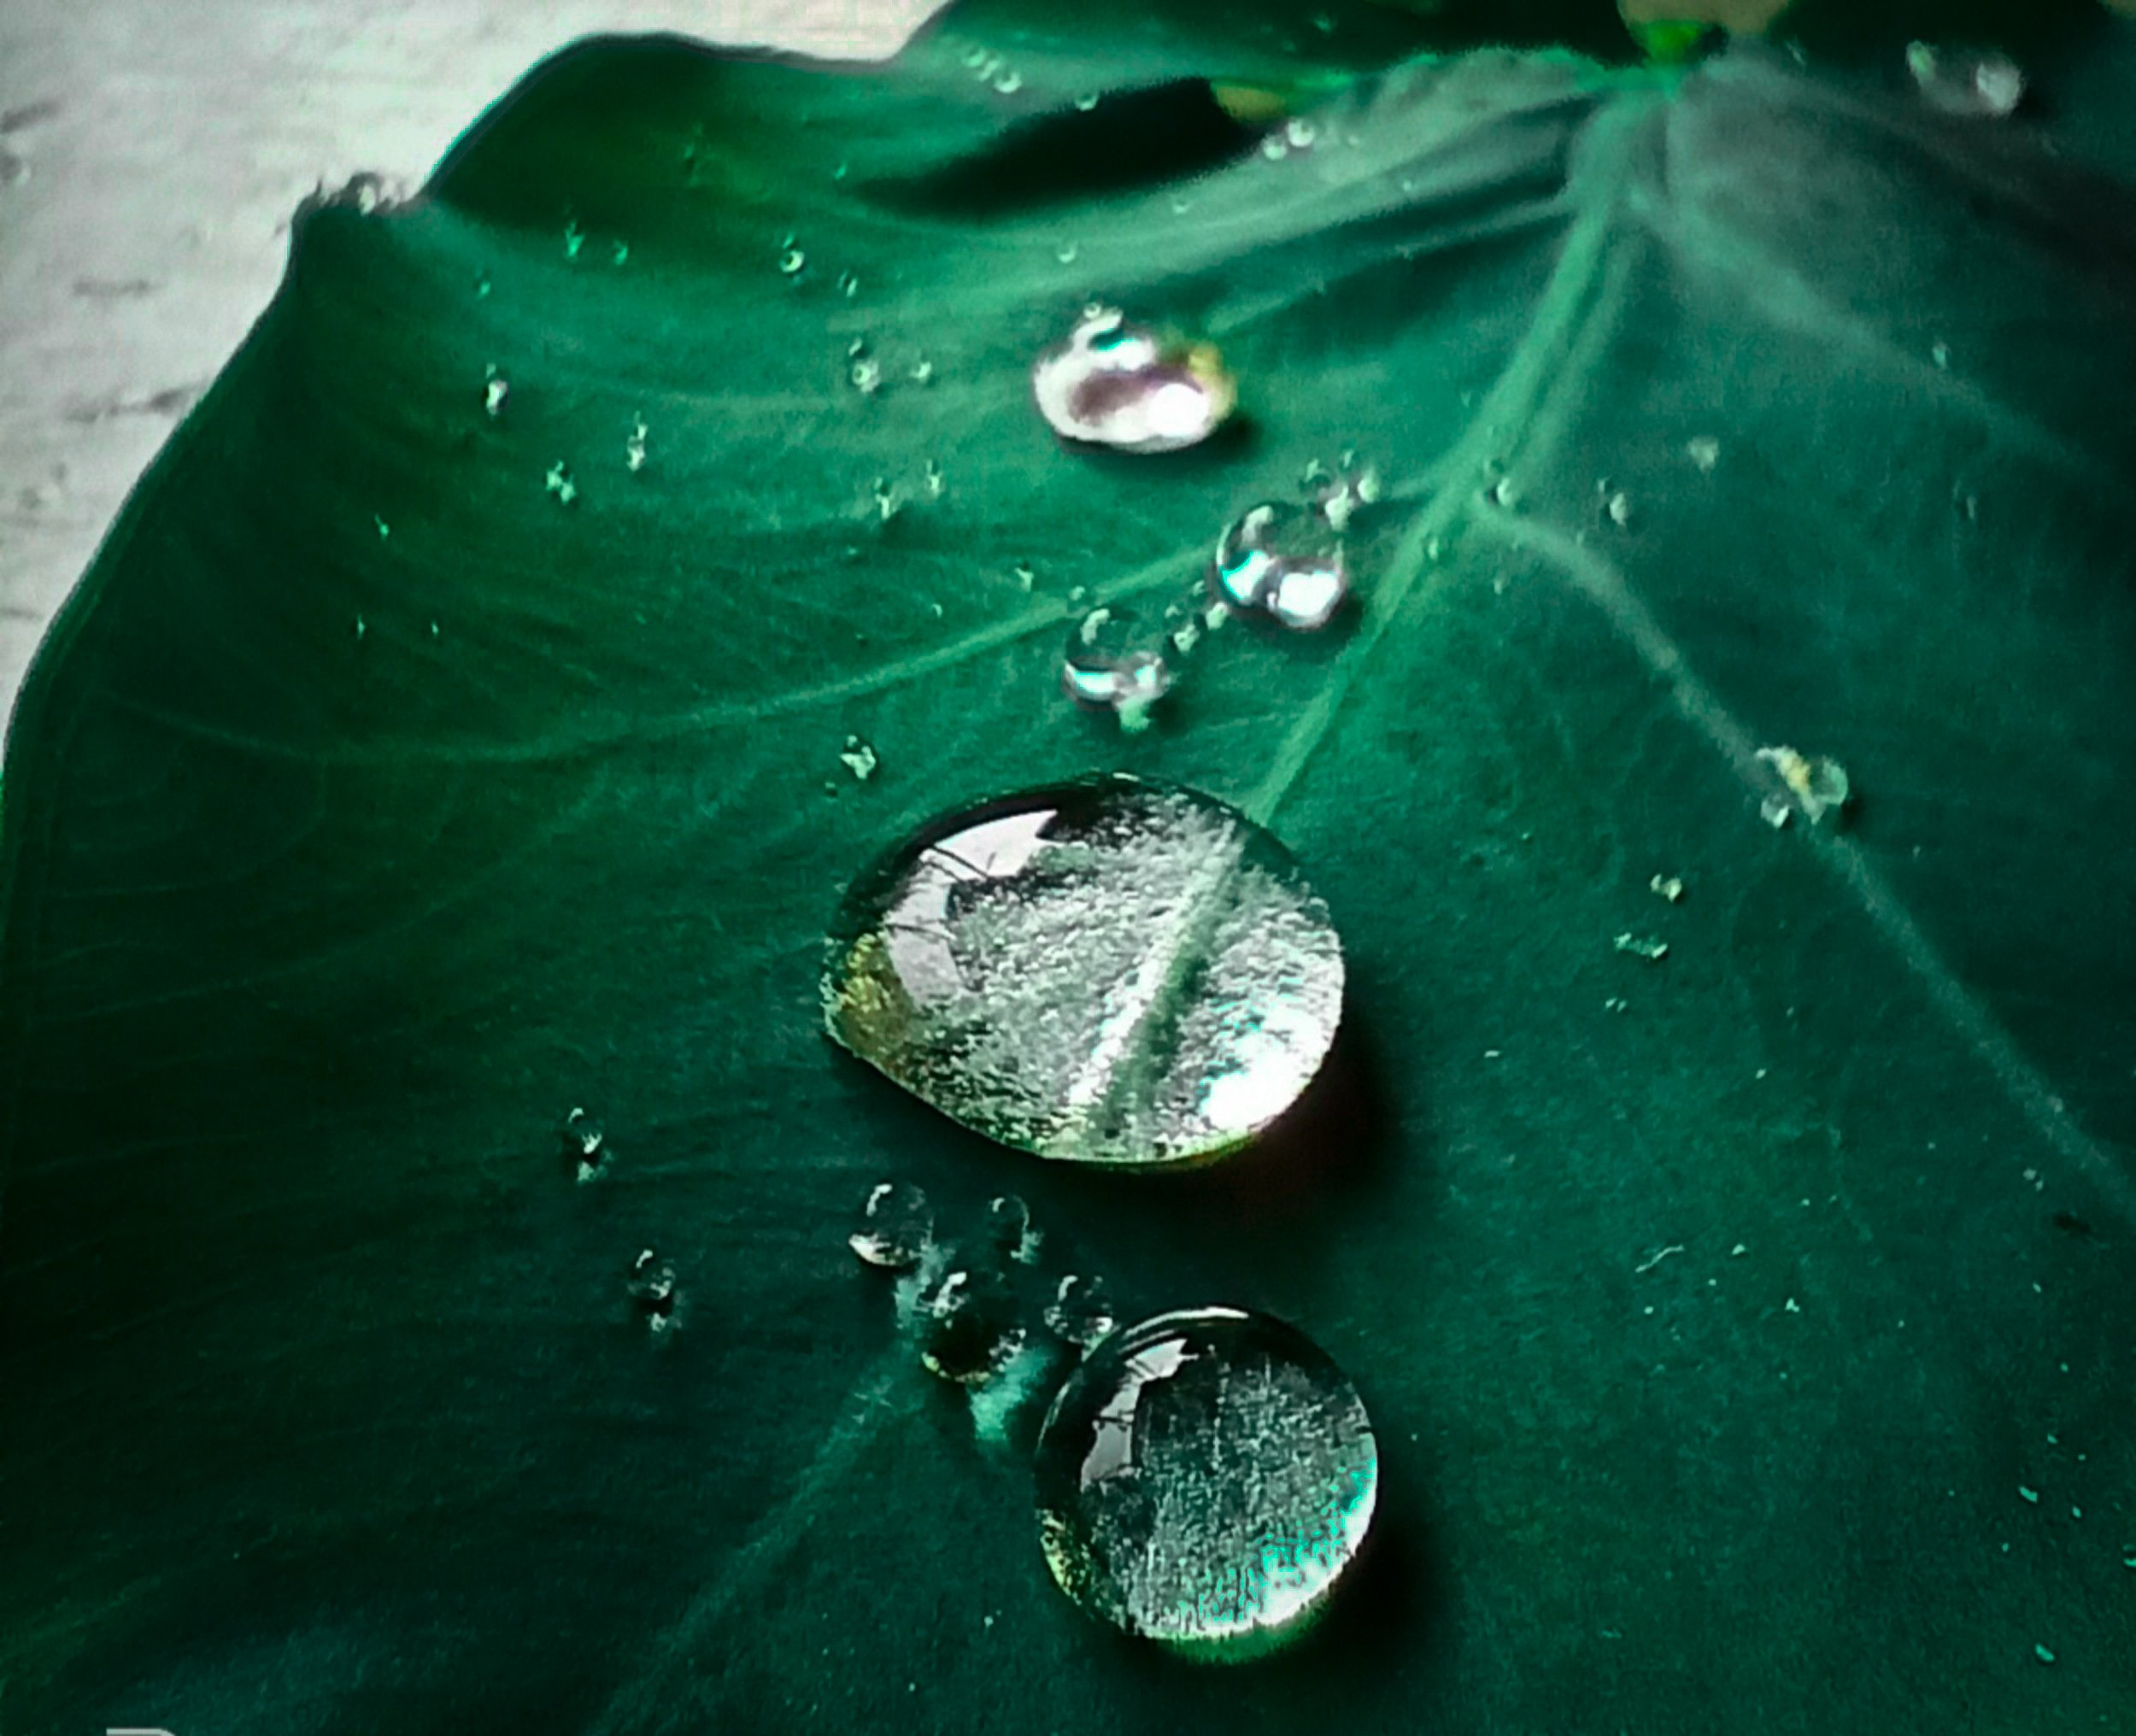 Water drops on a taro leaf